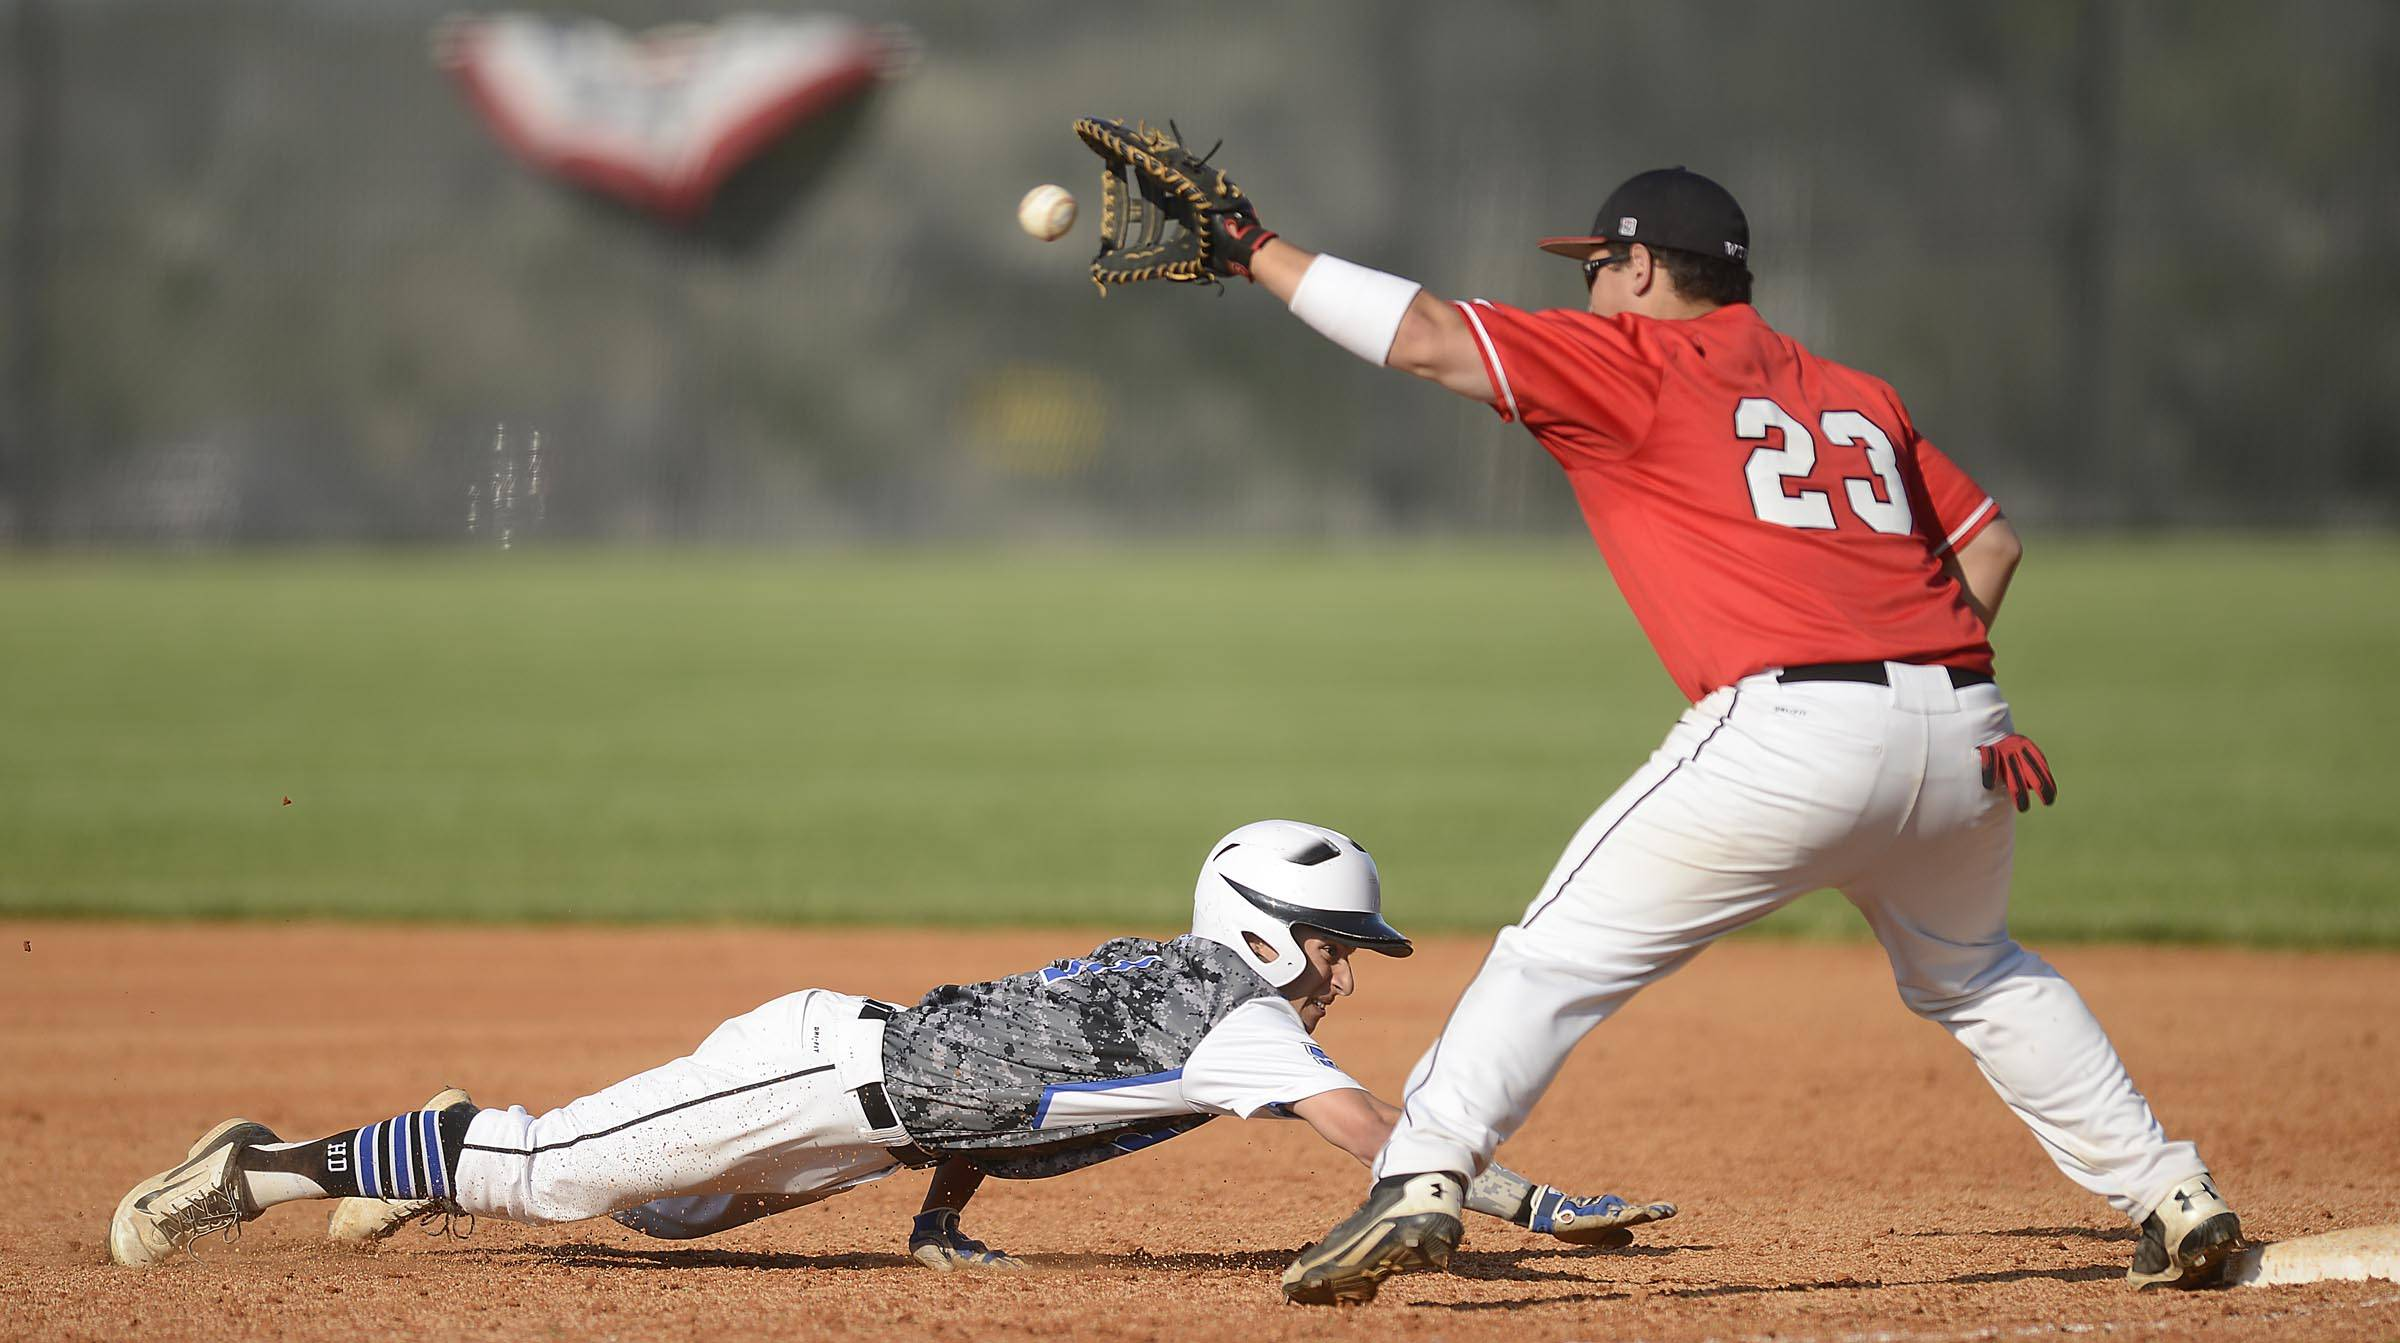 St. Charles North's Anthony Lambert dives safely back to first base as Glenbard East's John Allen receives the pick off throw in the regional semifinal game in St. Charles.